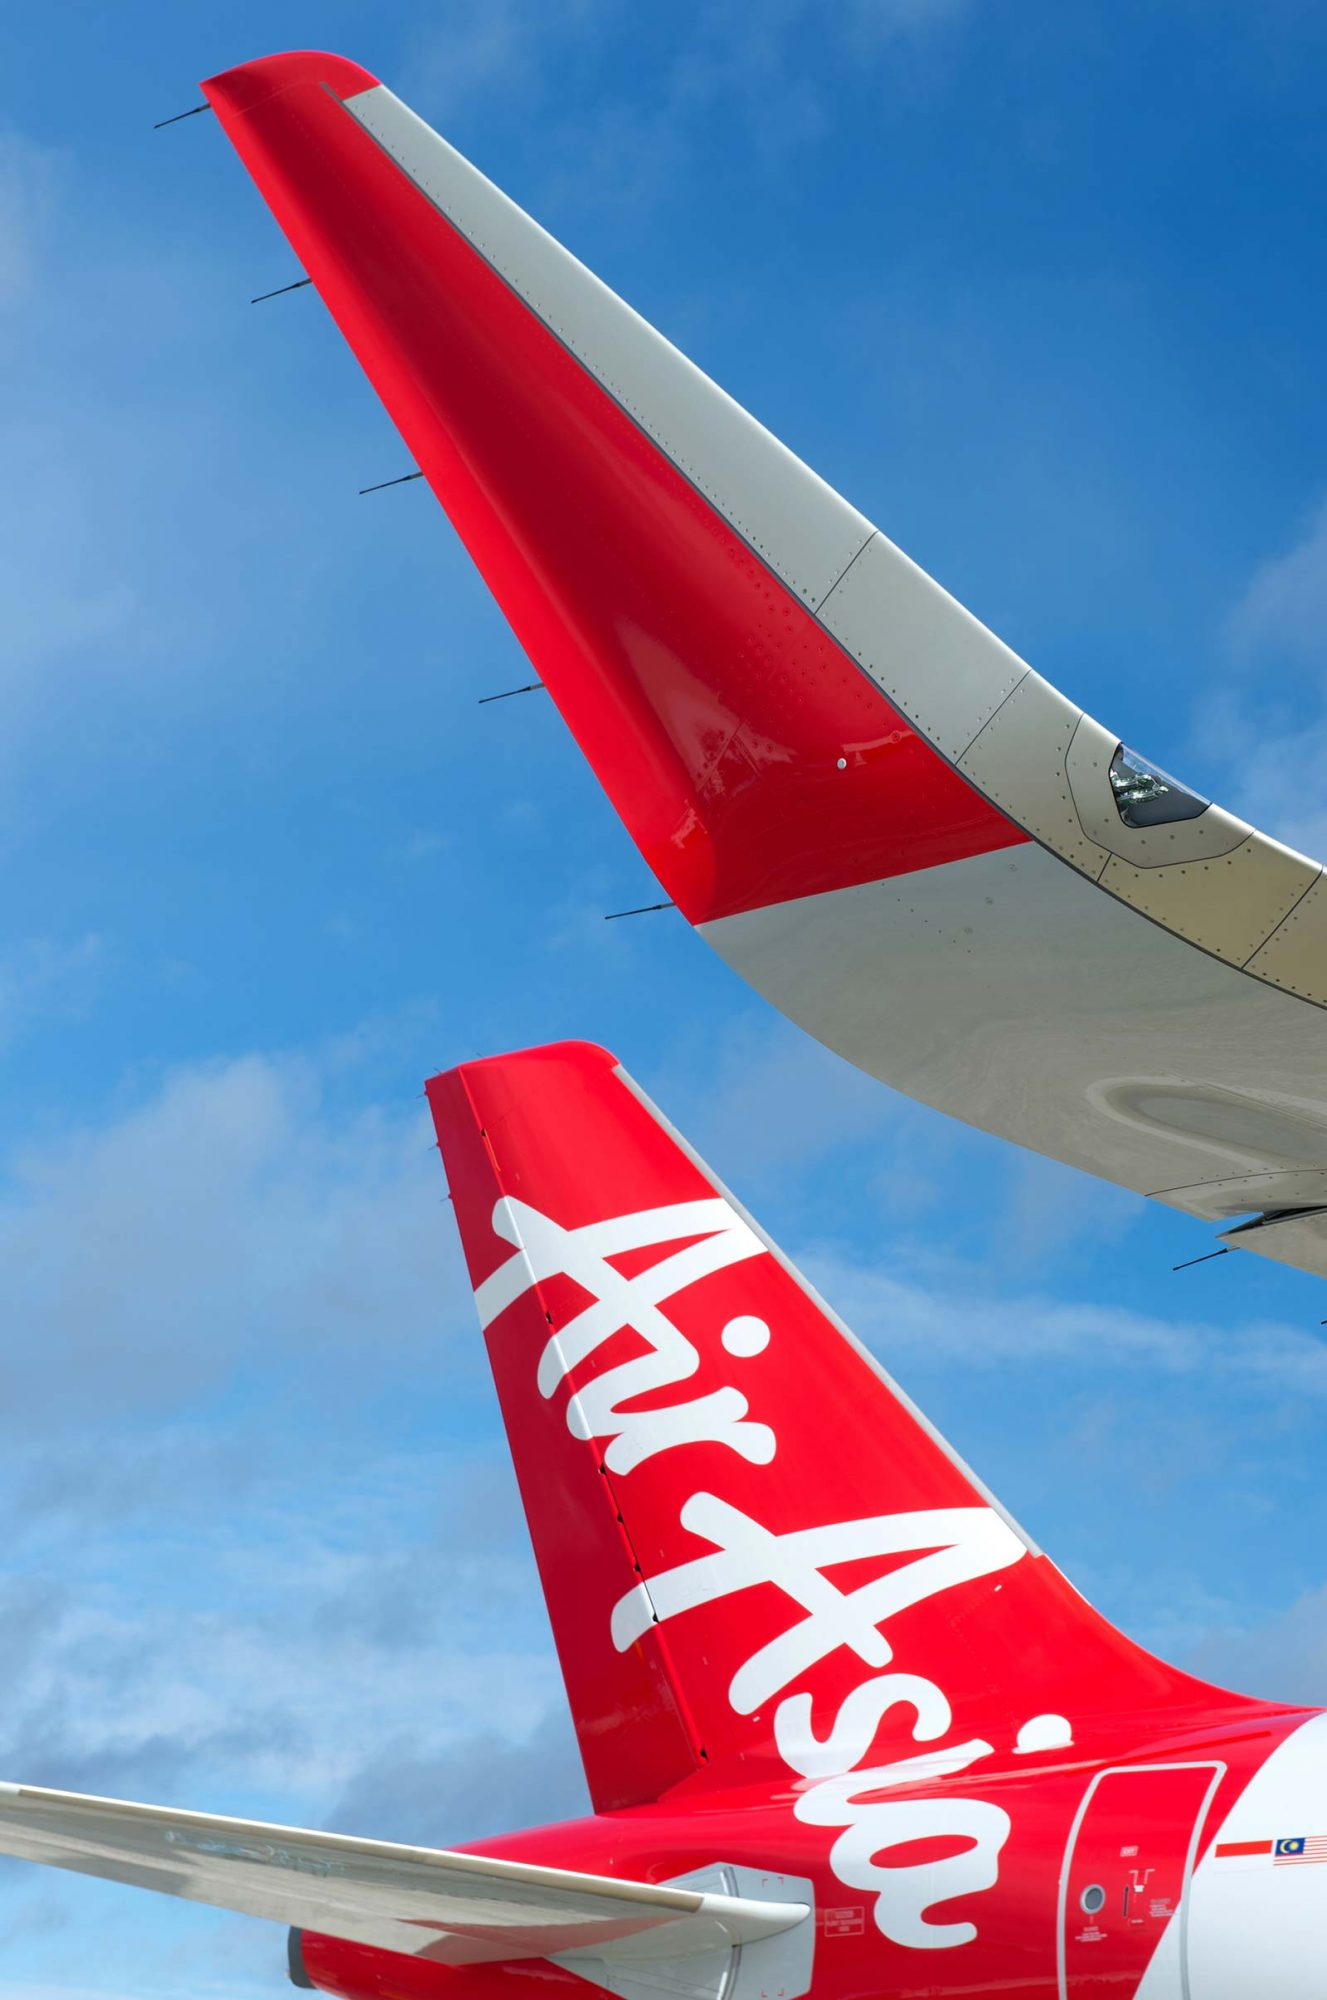 Sharkskin texture on planes to help make them more aerodynamic AirAsia